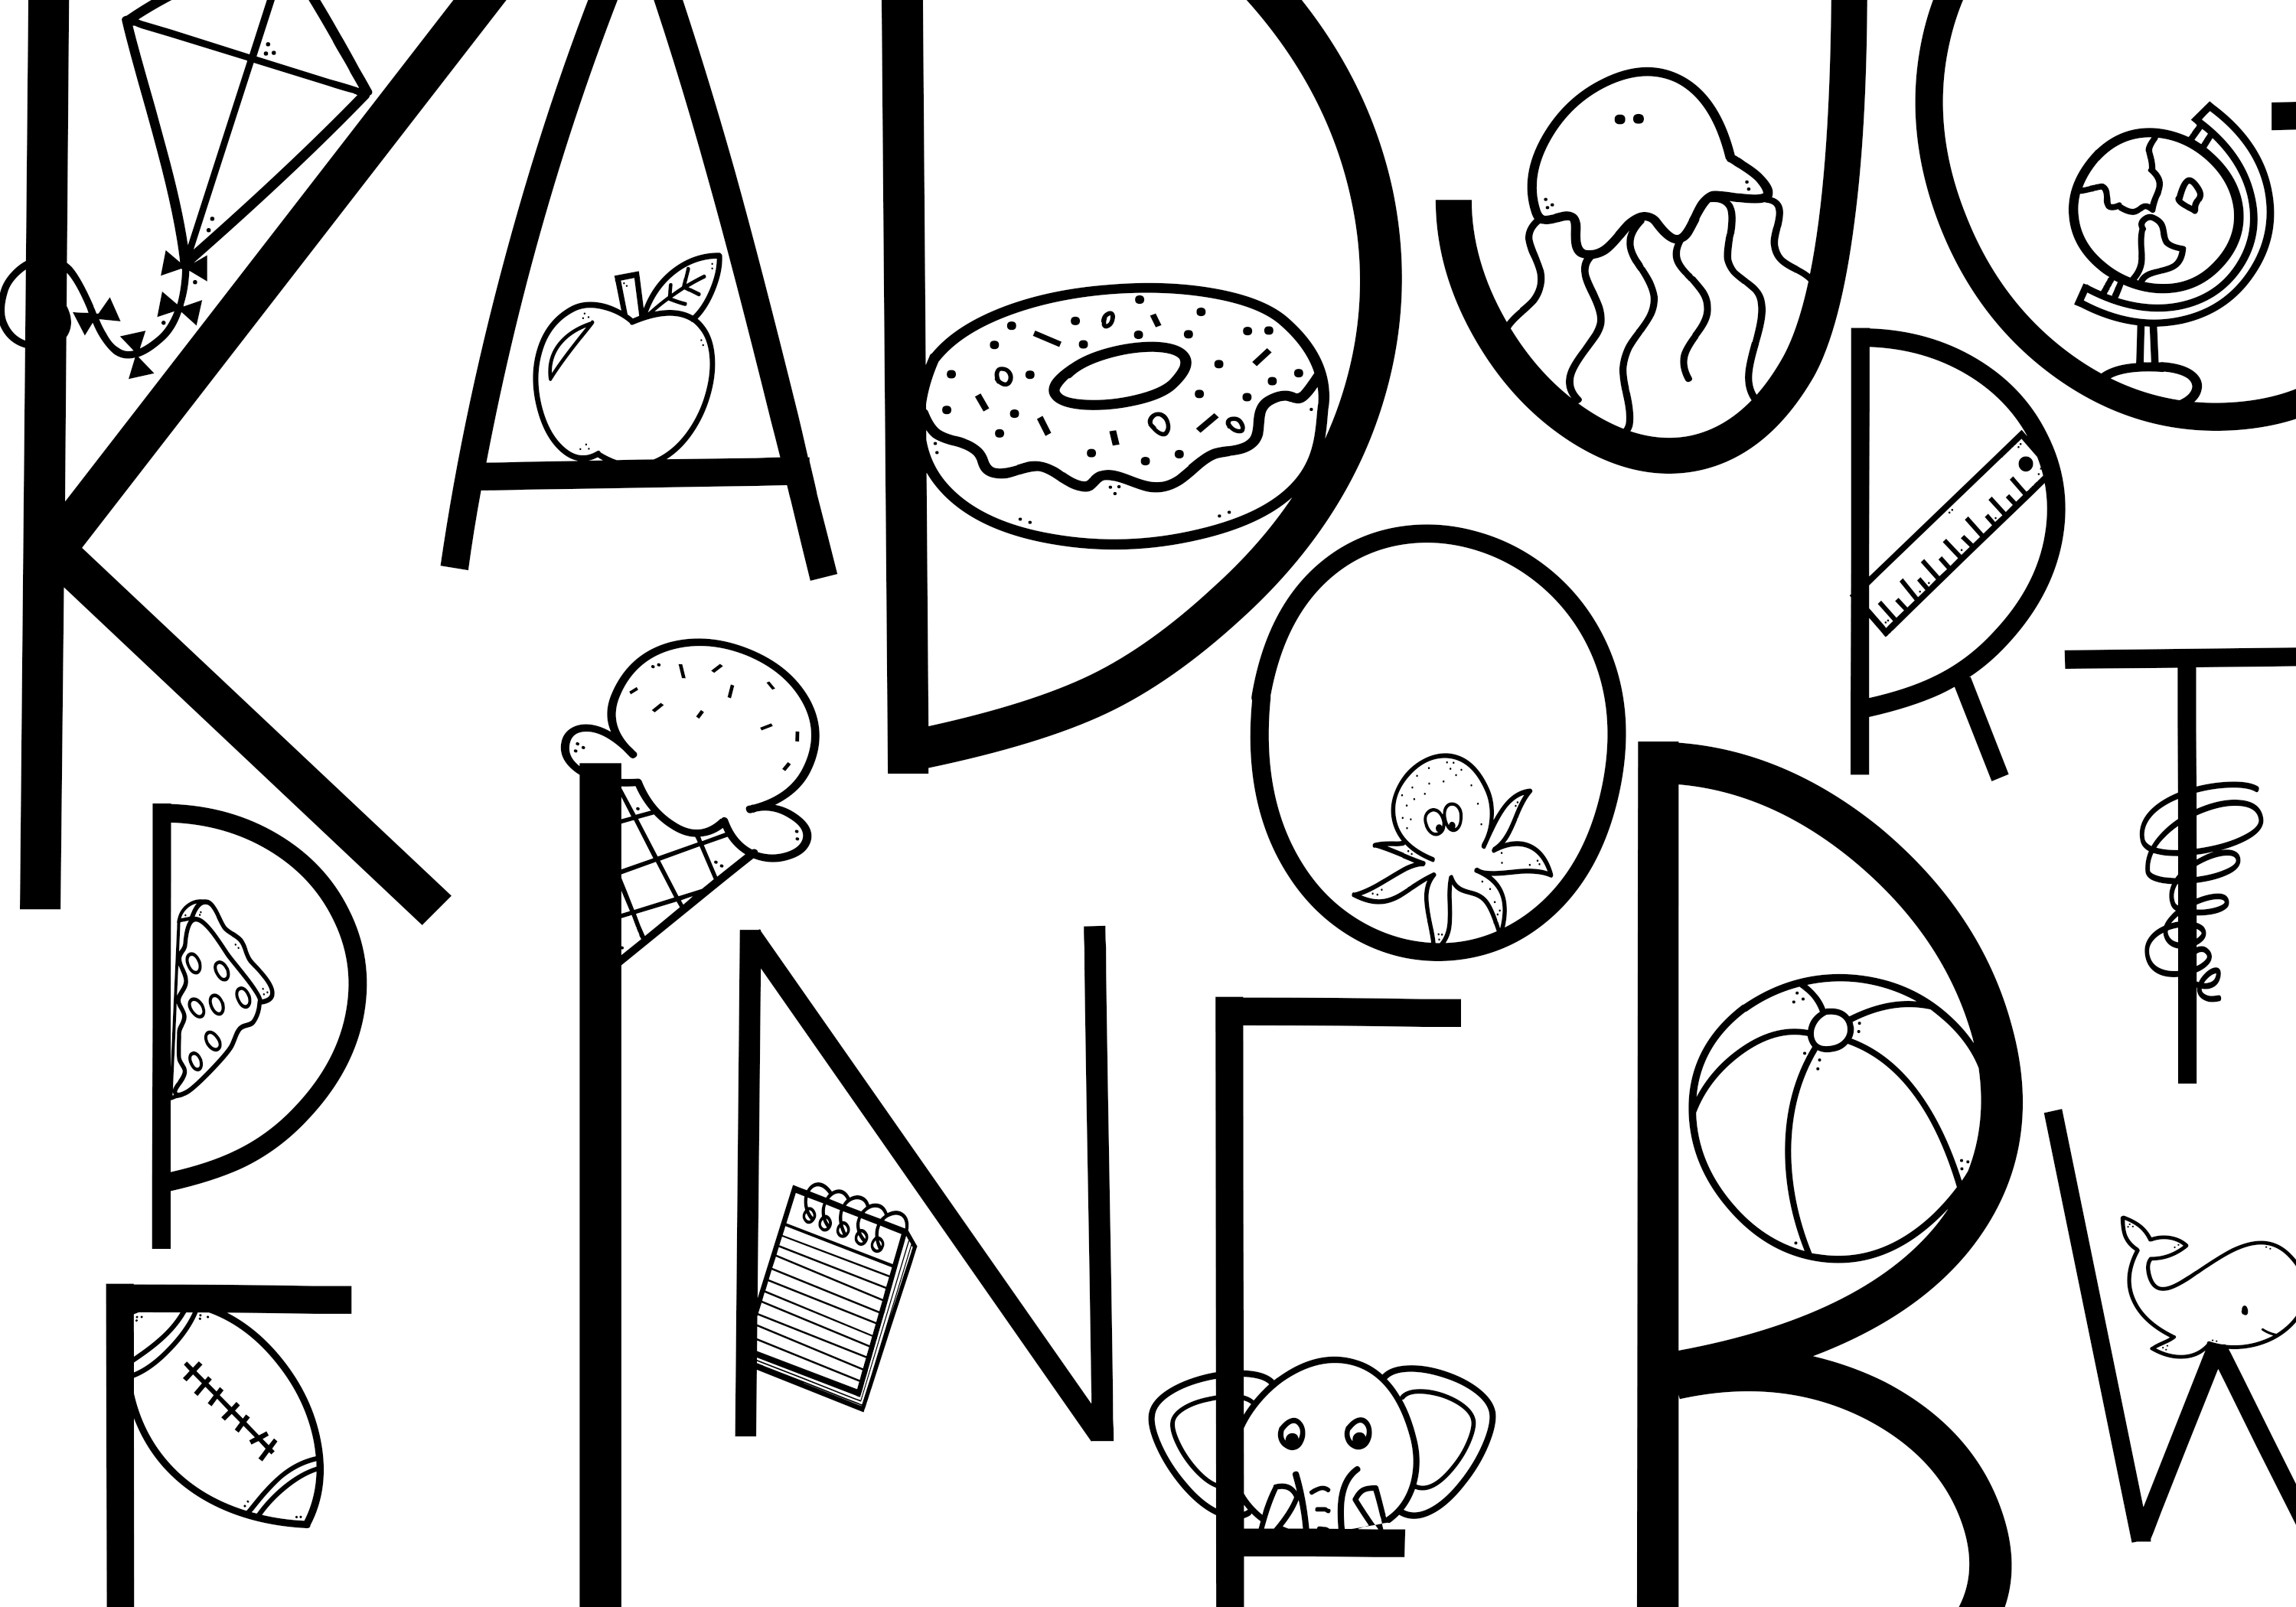 All The Thangs - A Handmade Letter & Doodle Font - Teaching example image 2